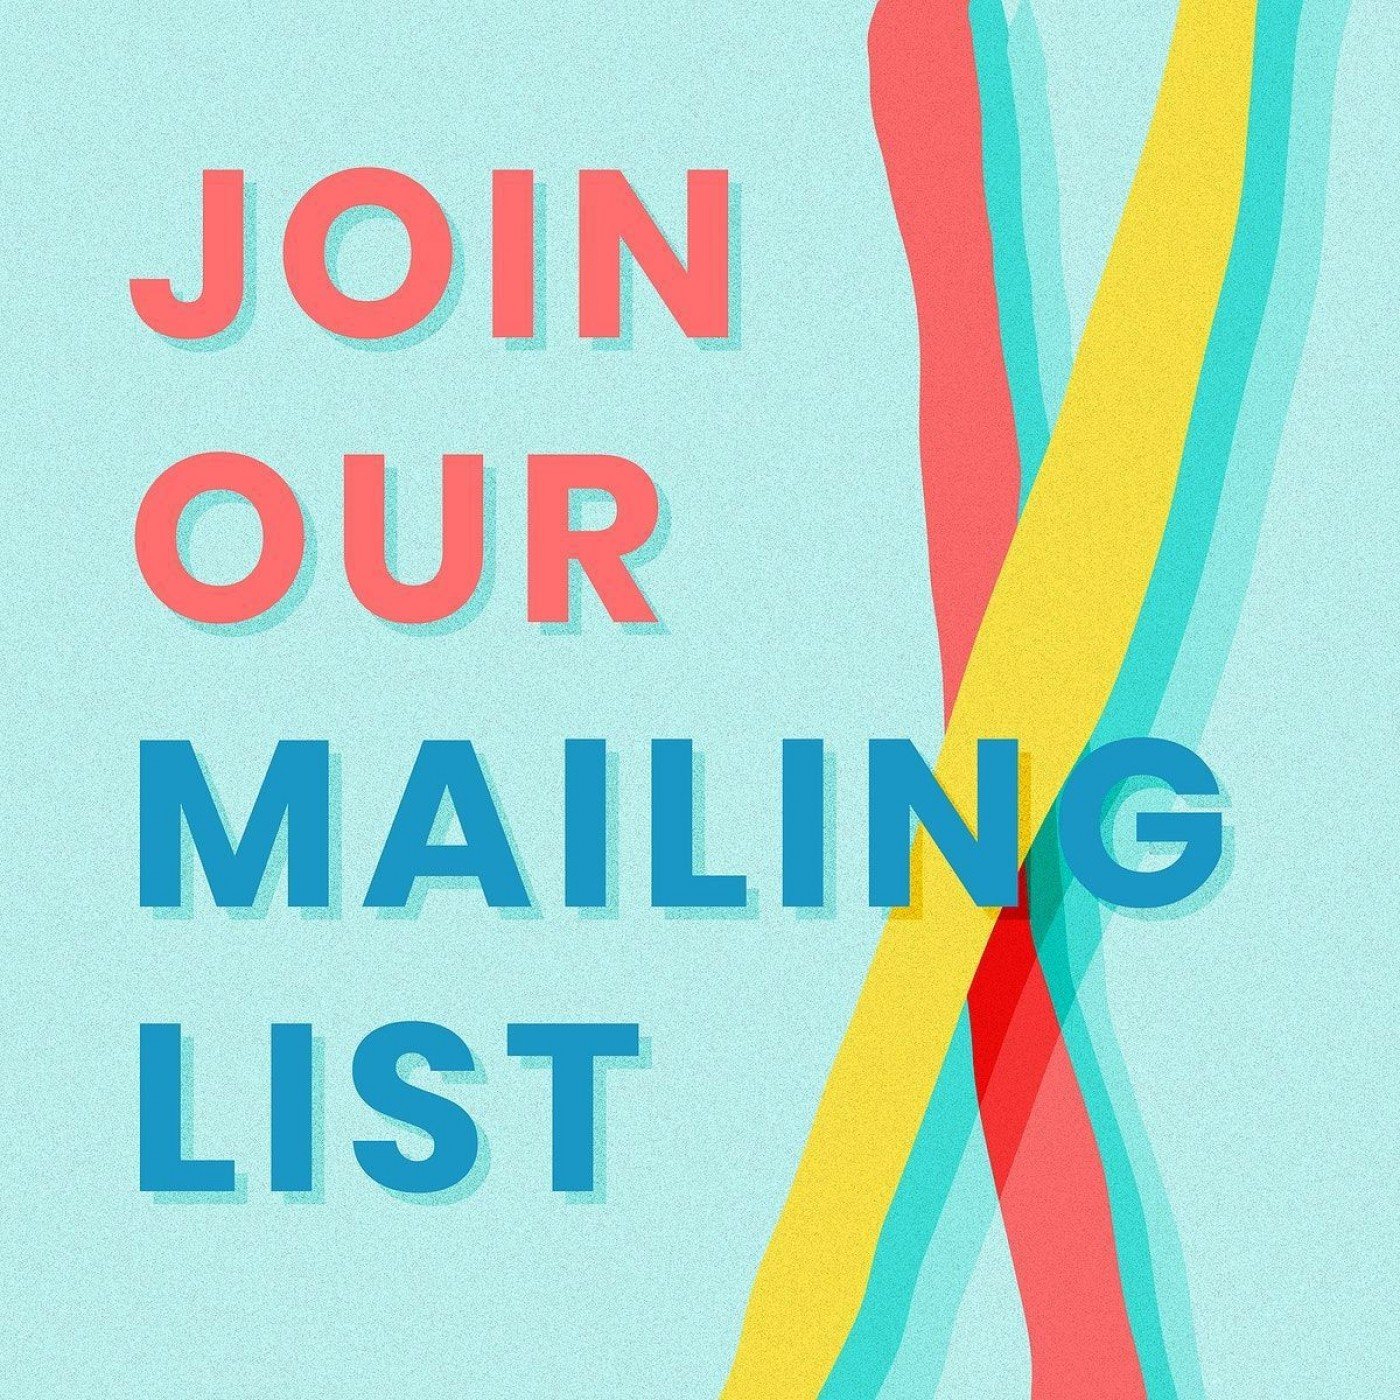 003 Surprising Join Our Mailing List Template Highest Clarity  Email1400